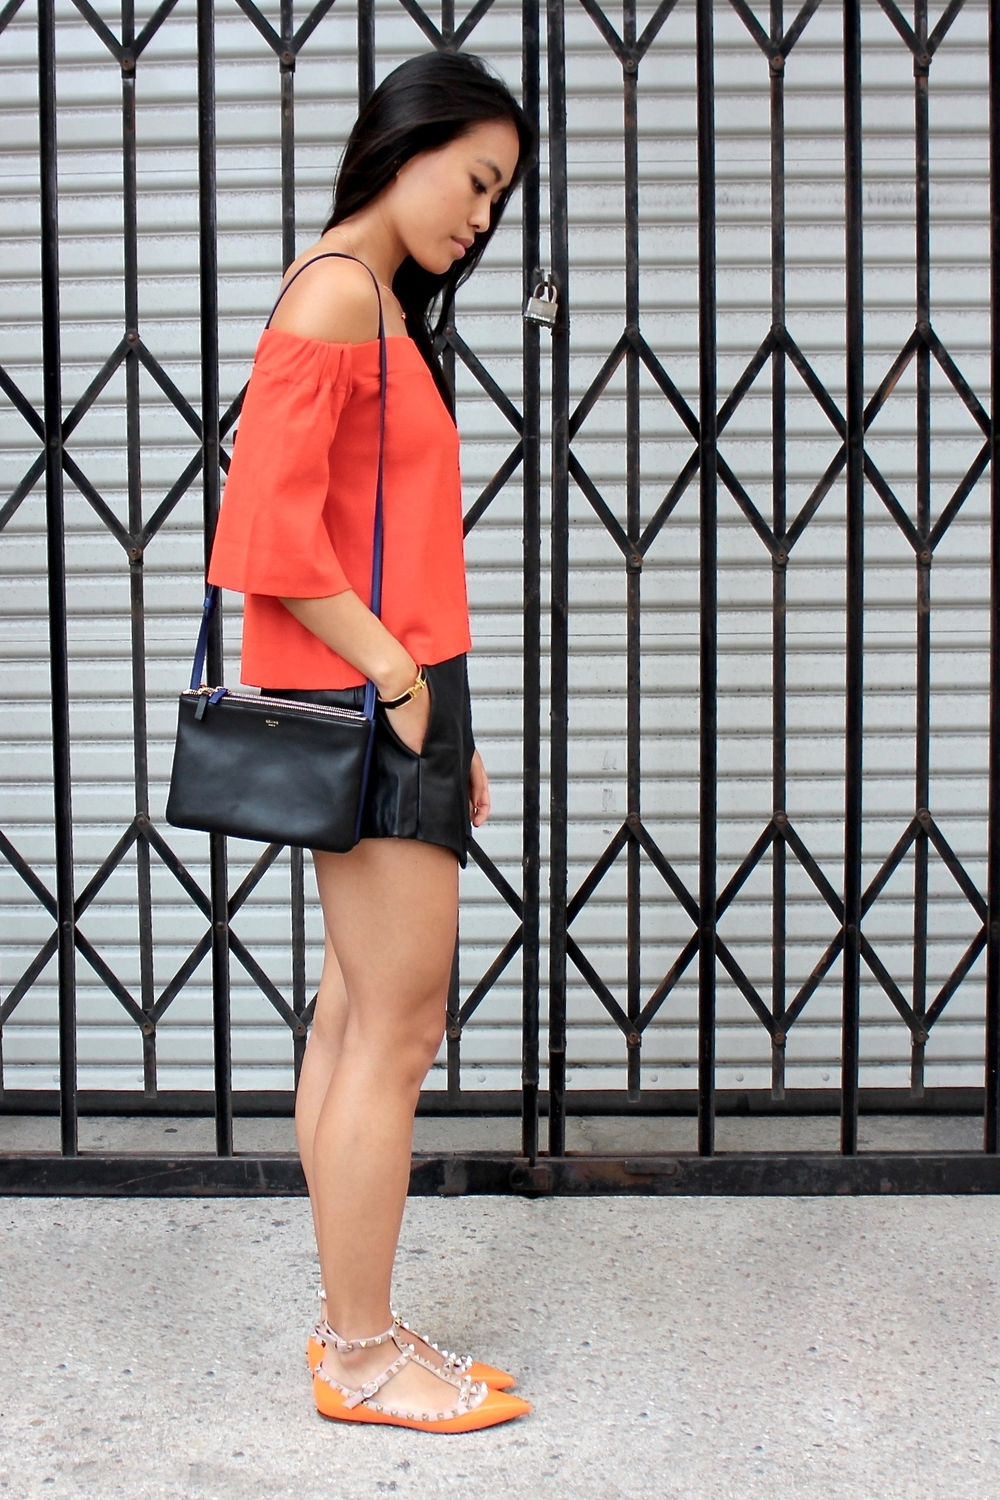 Just Goh With It-Outfit-Asos-Orange-Off-Shoulder-Top-Zara-black-Leather-Skirt-Skort-valentino-rockstud-flats-5.jpg